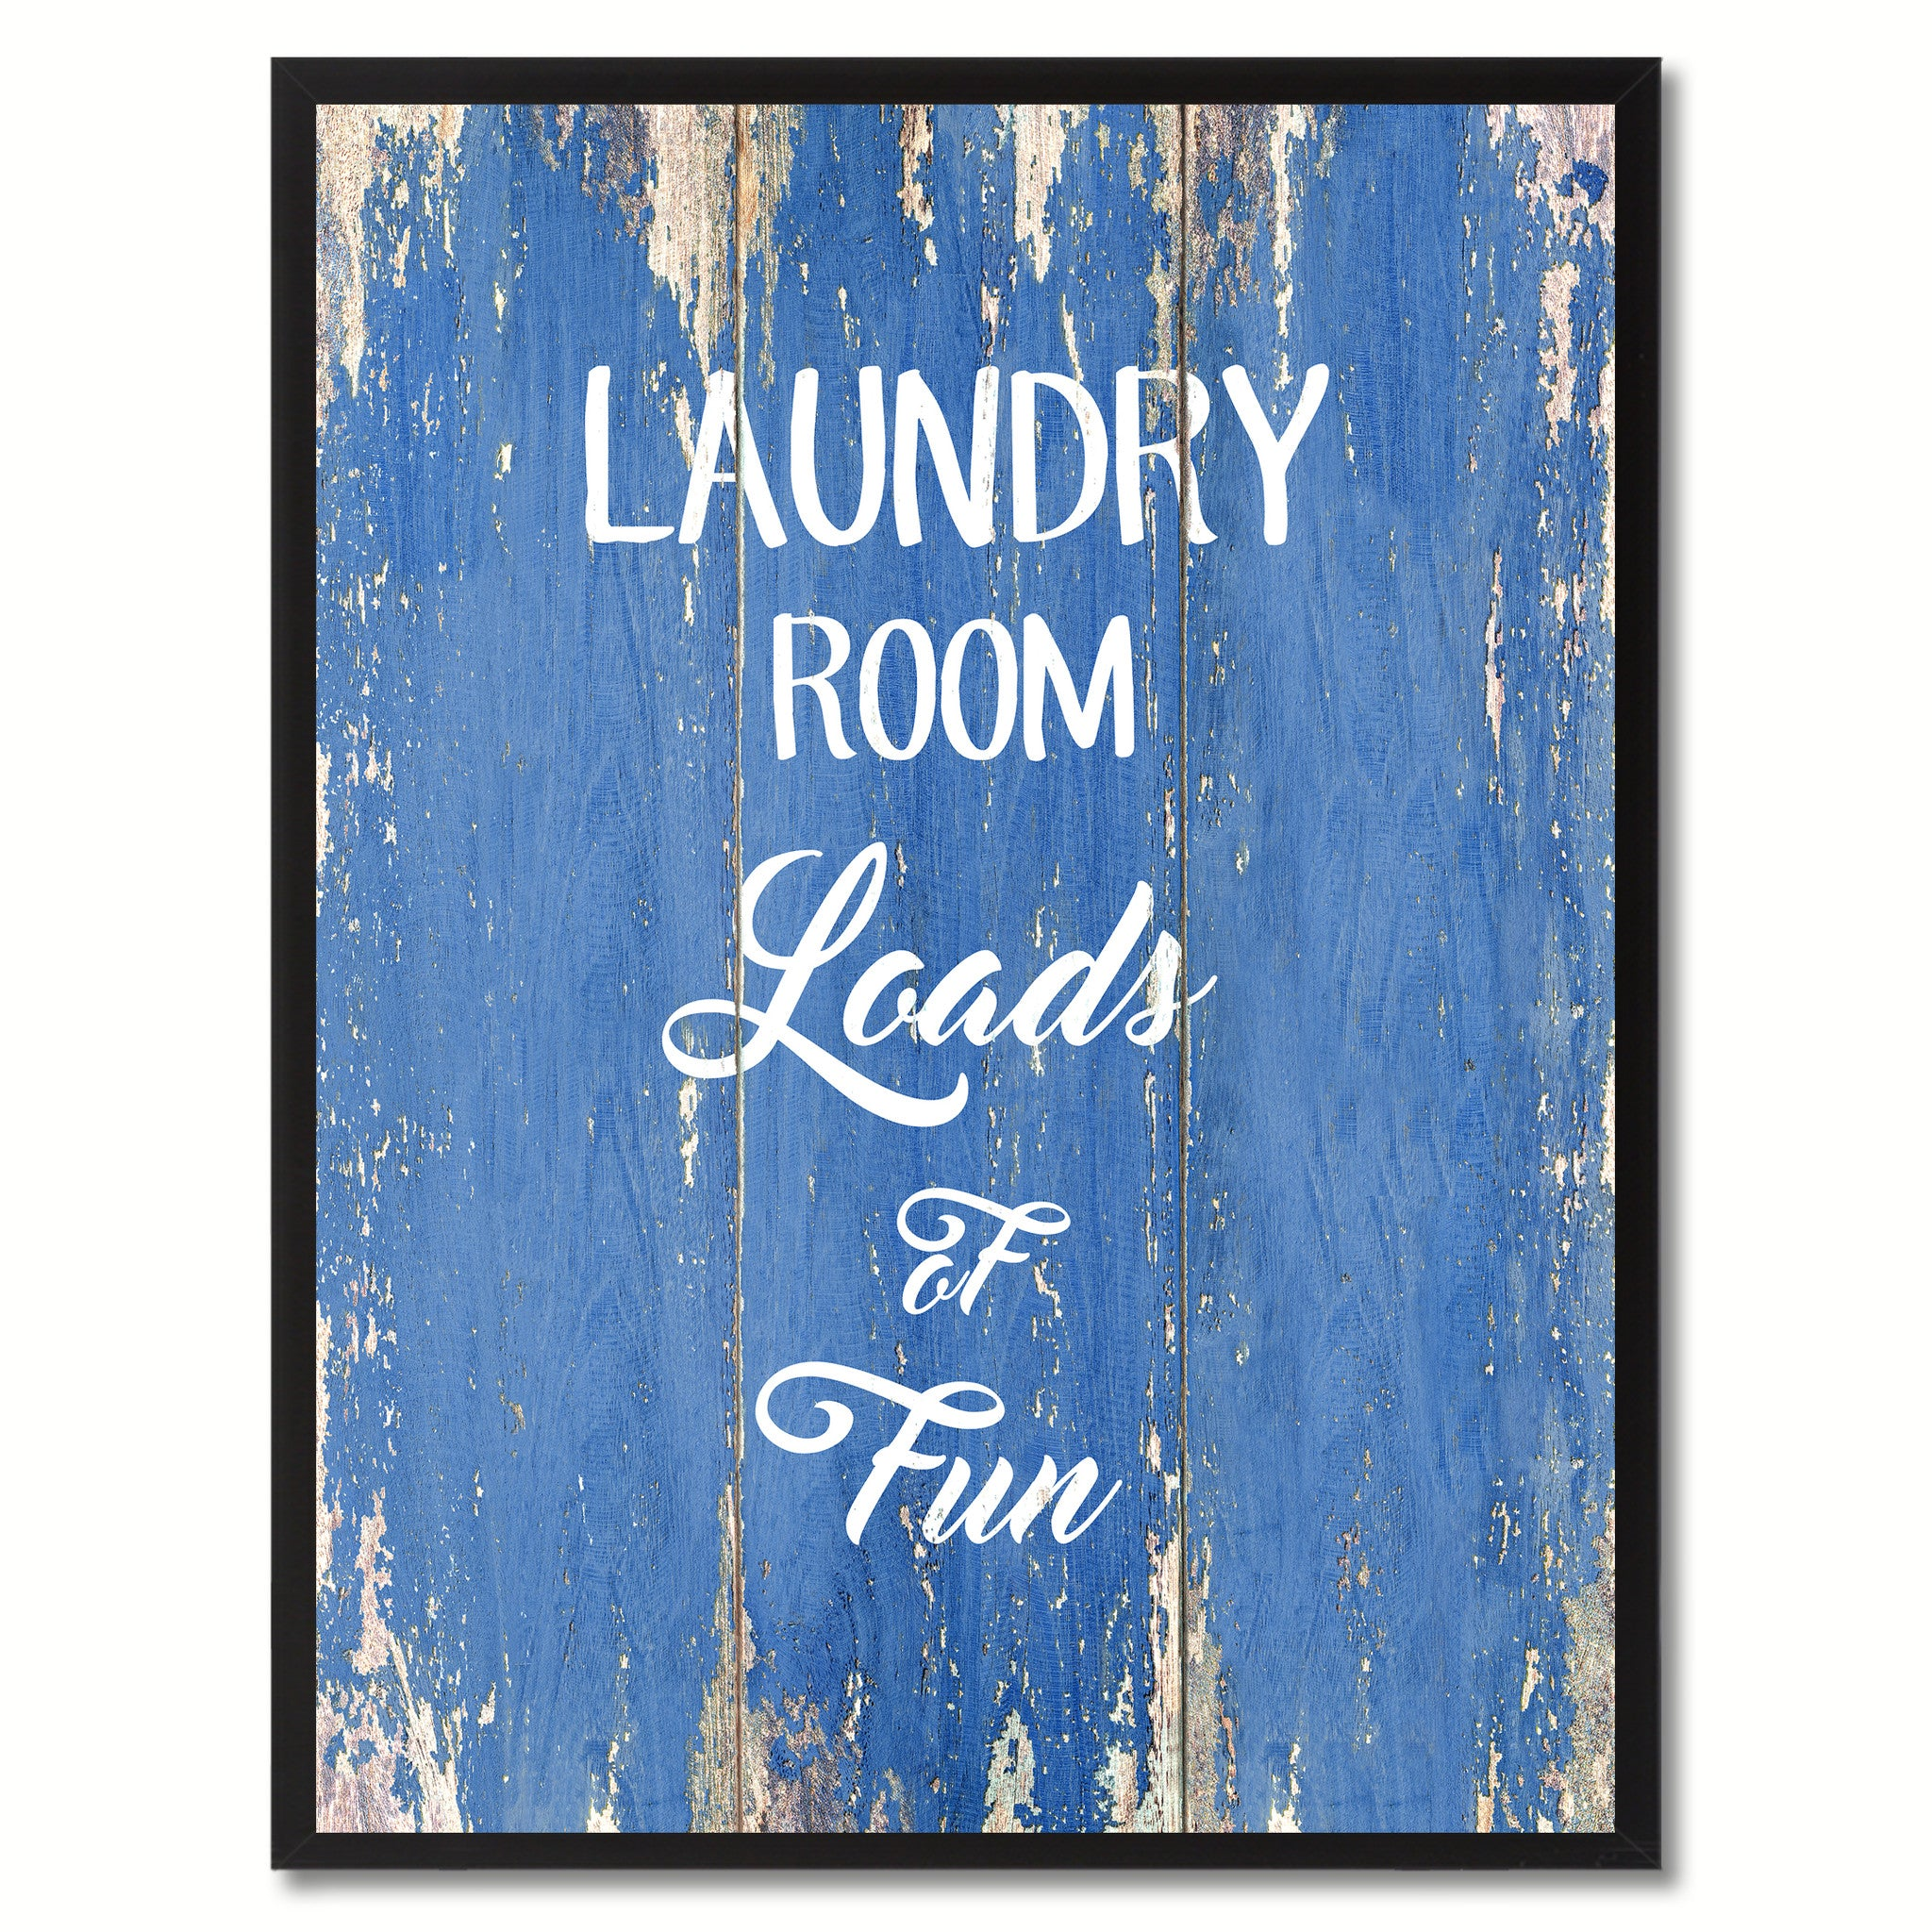 The Laundry Room Loads Of Fun Sign Laundry Room Loads Of Fun Funny Quote Saying Gifts Home Décor Wall